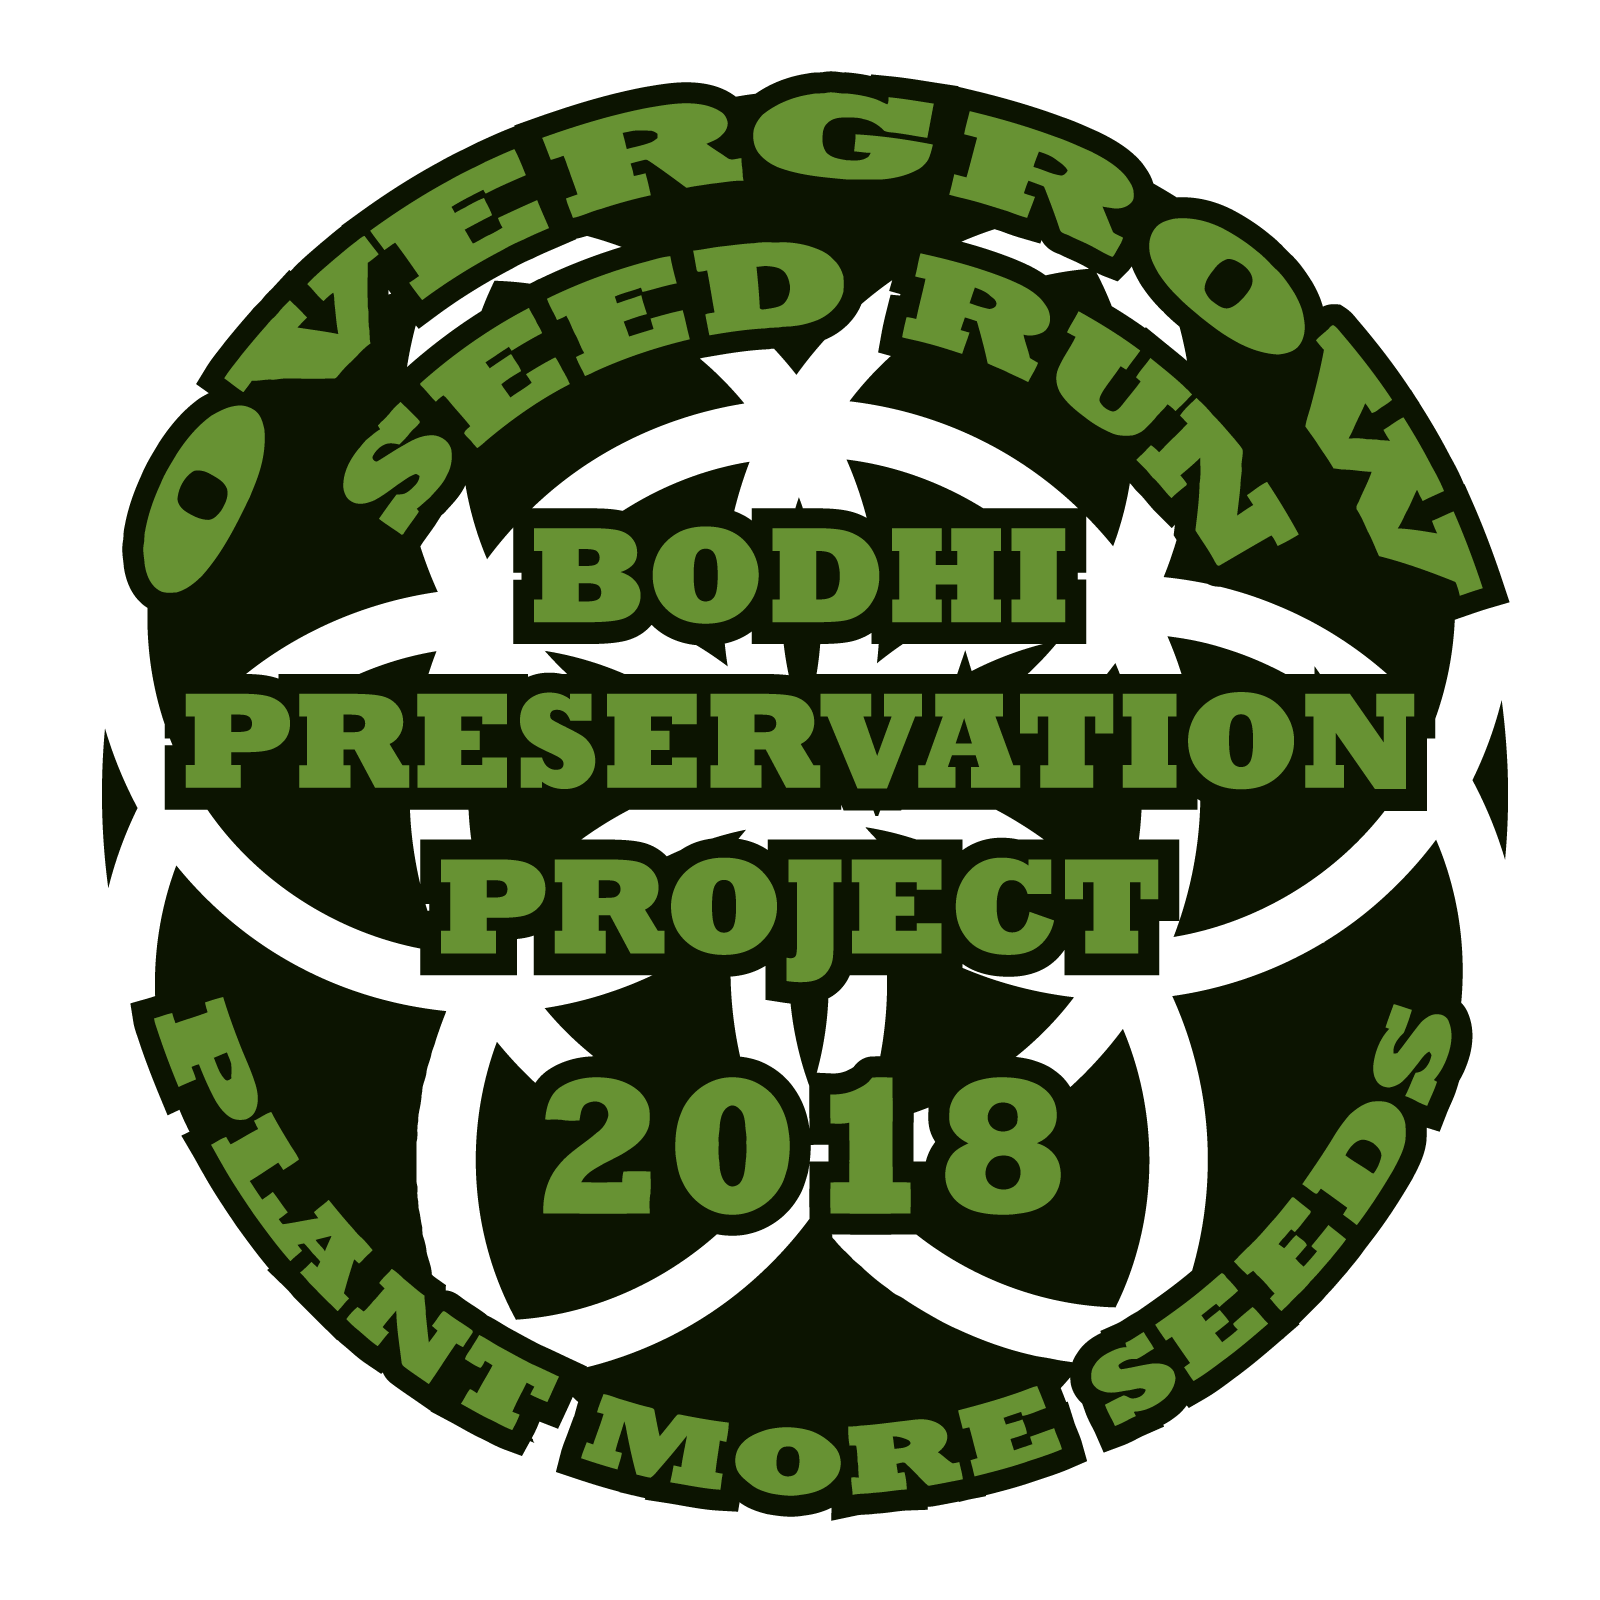 Seed Run Co-Op Bodhi Preservation Project In-house Special